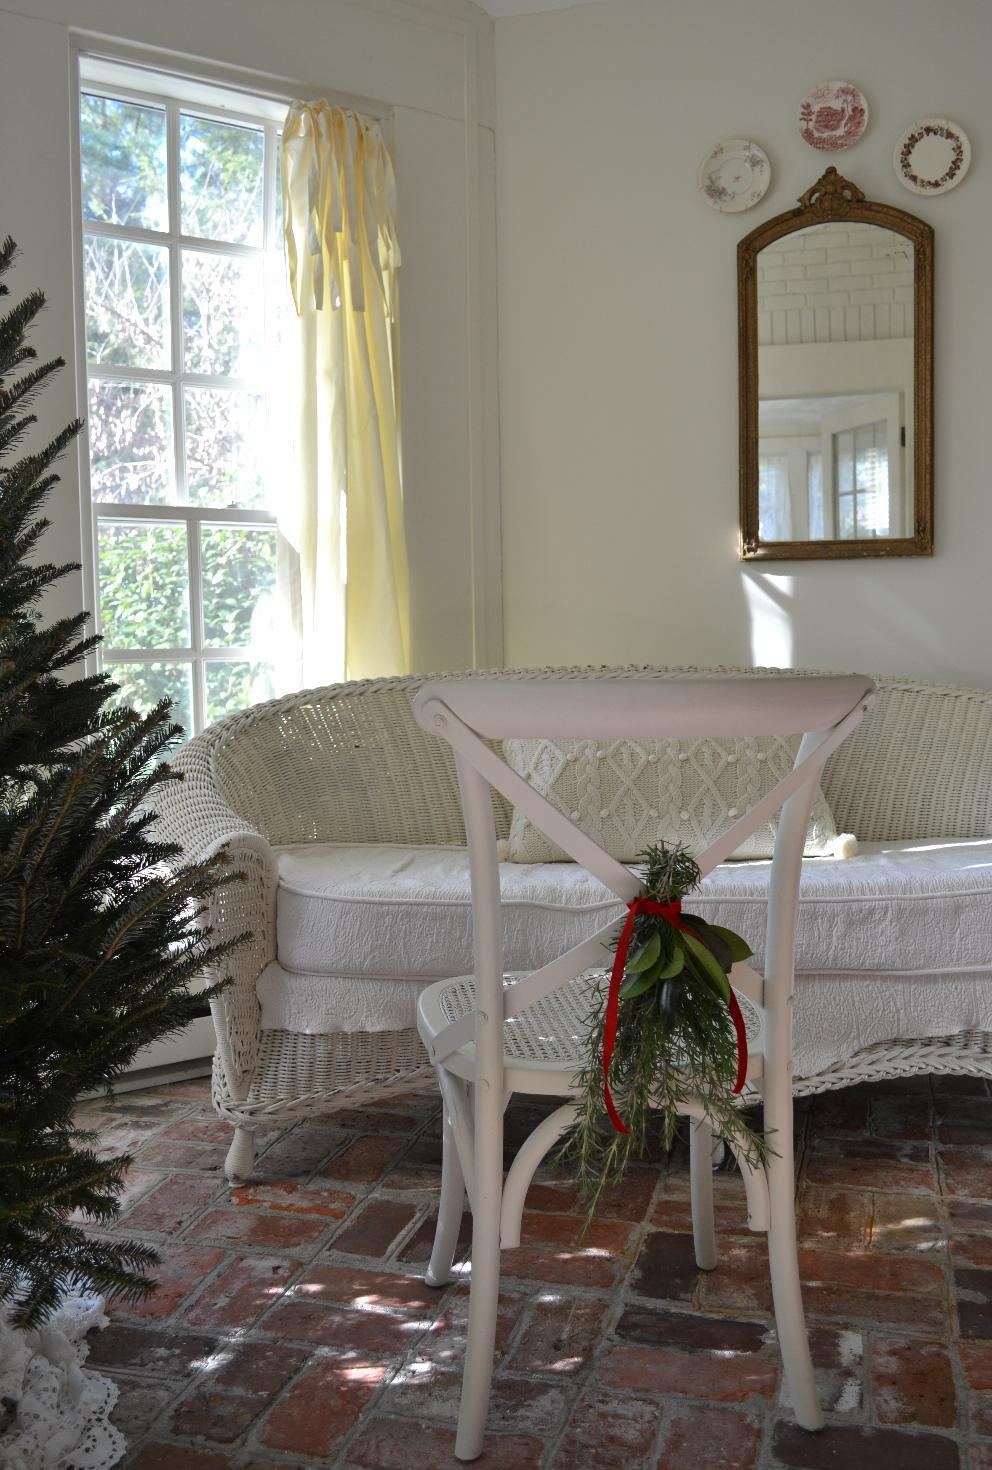 Cottage Fix - Christmas on the sun porch with a fresh greenery chair swag